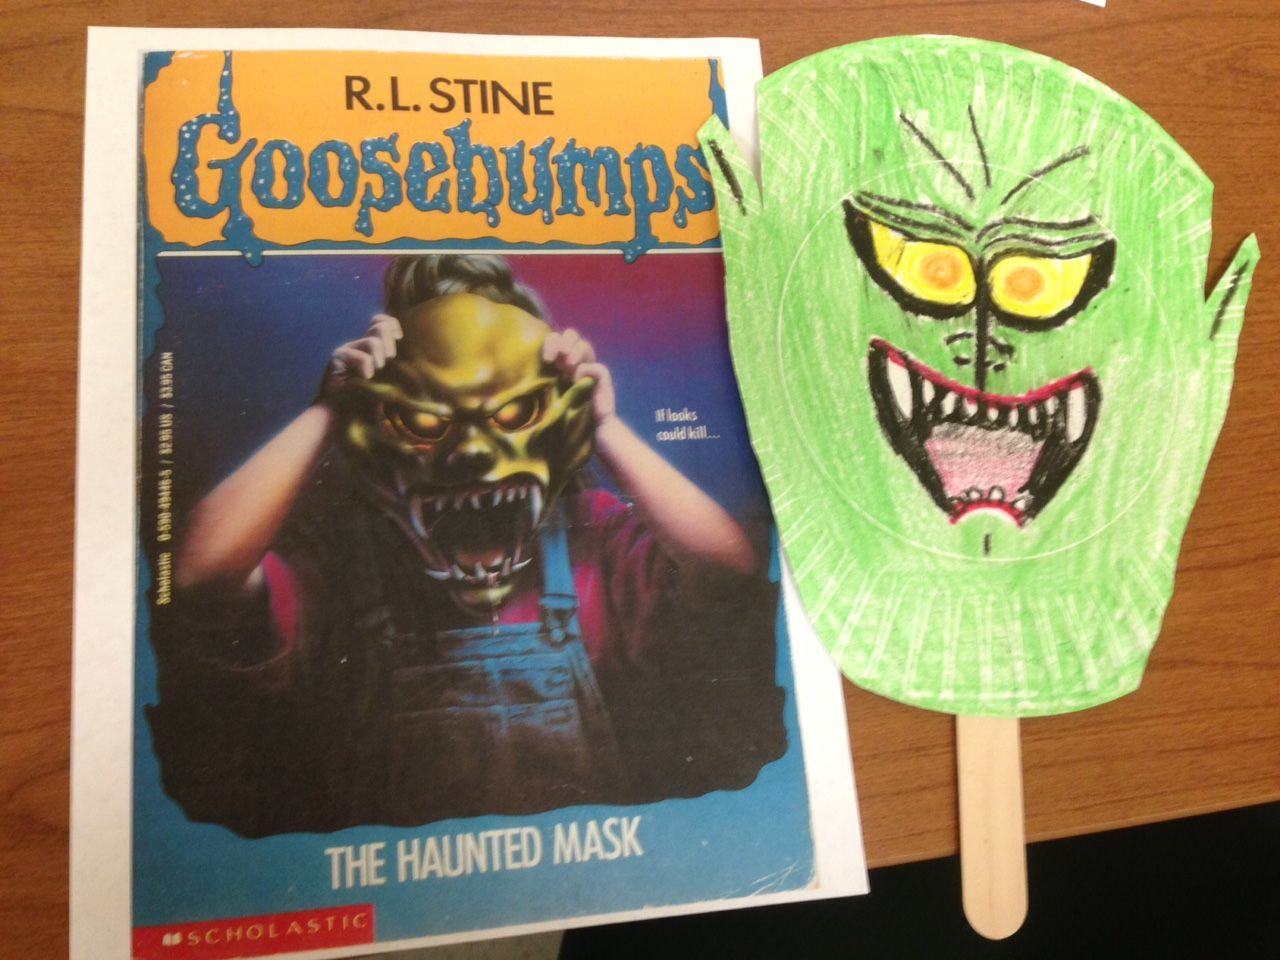 Easy Craft Haunted Mask Color Creepy Crayon Faces On Paper Plates With A Craft Stick Holder Goosebumps Party Kids Party Goosebumps Books